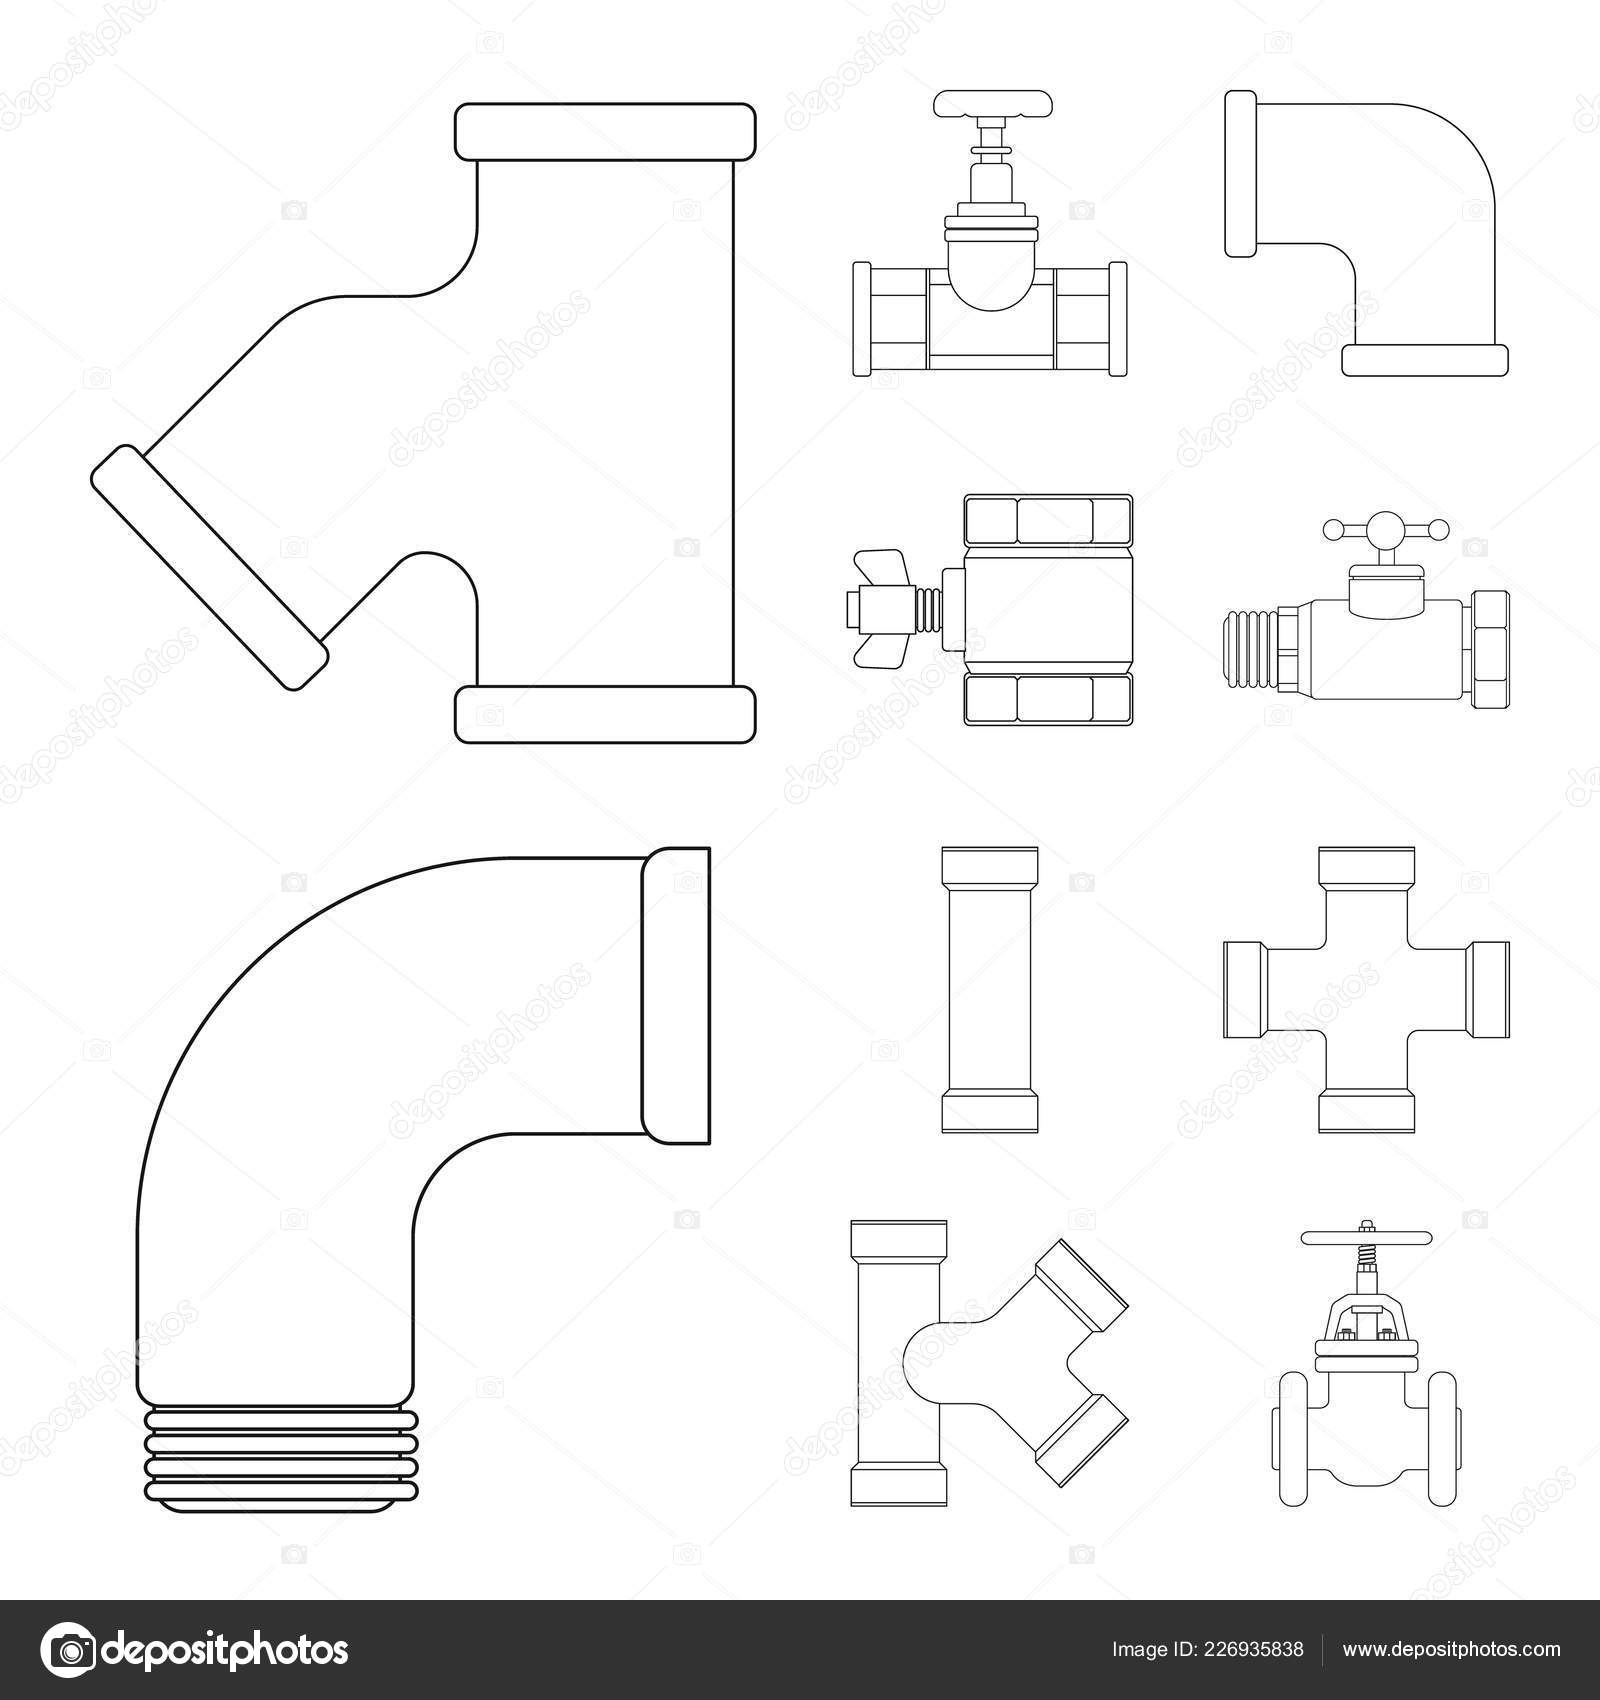 Vector Illustration Of Pipe And Tube Symbol Set Piping Diagram Symbols Pipeline Icon For